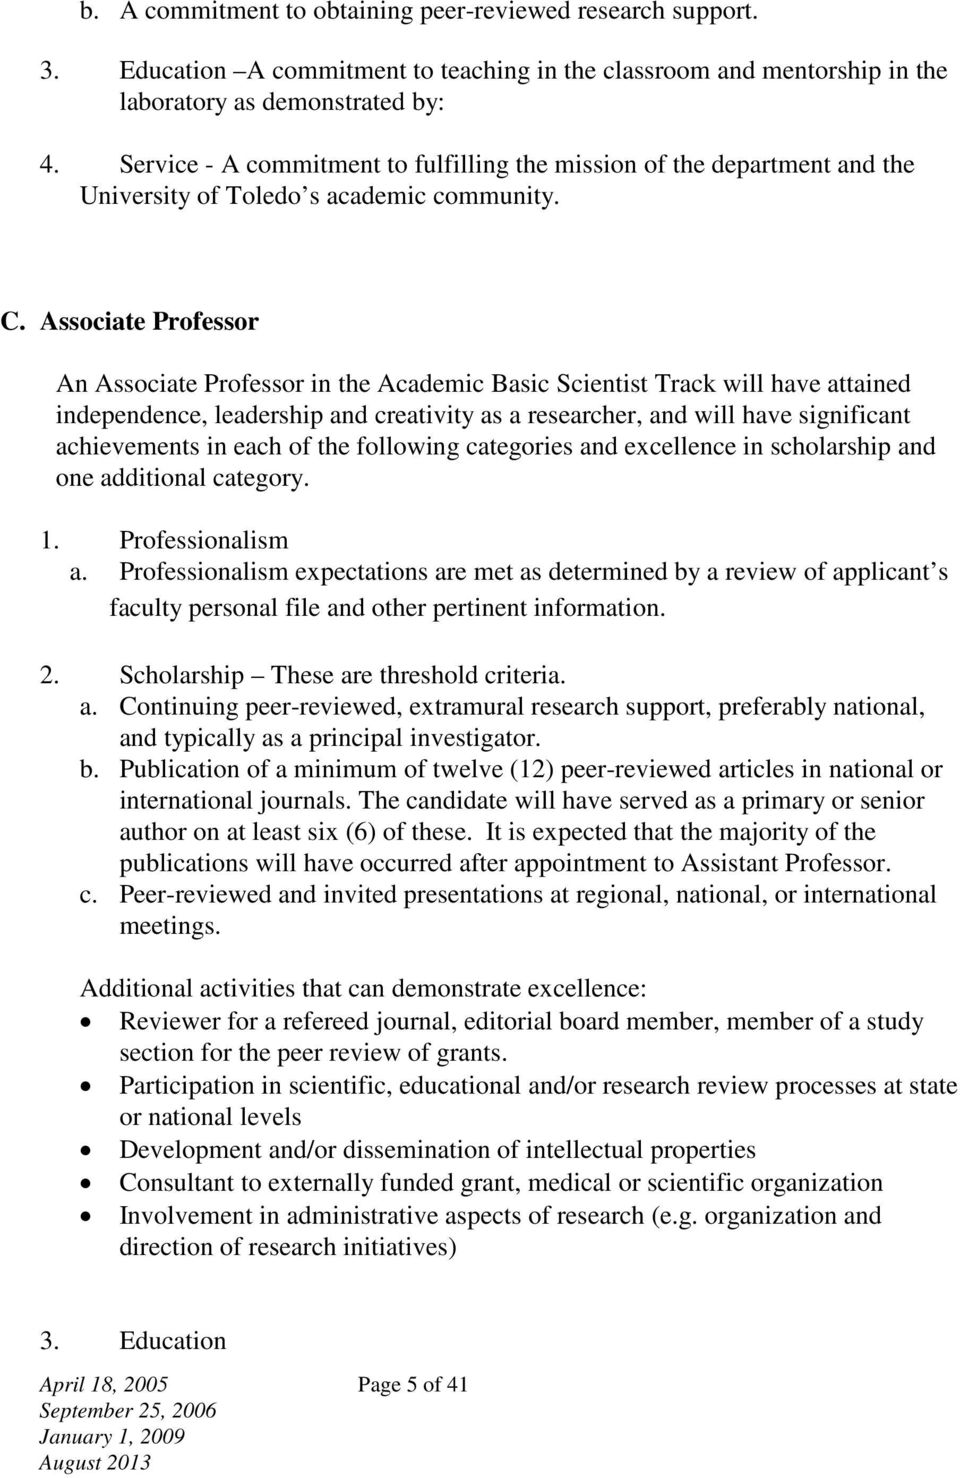 Associate Professor An Associate Professor in the Academic Basic Scientist Track will have attained independence, leadership and creativity as a researcher, and will have significant achievements in